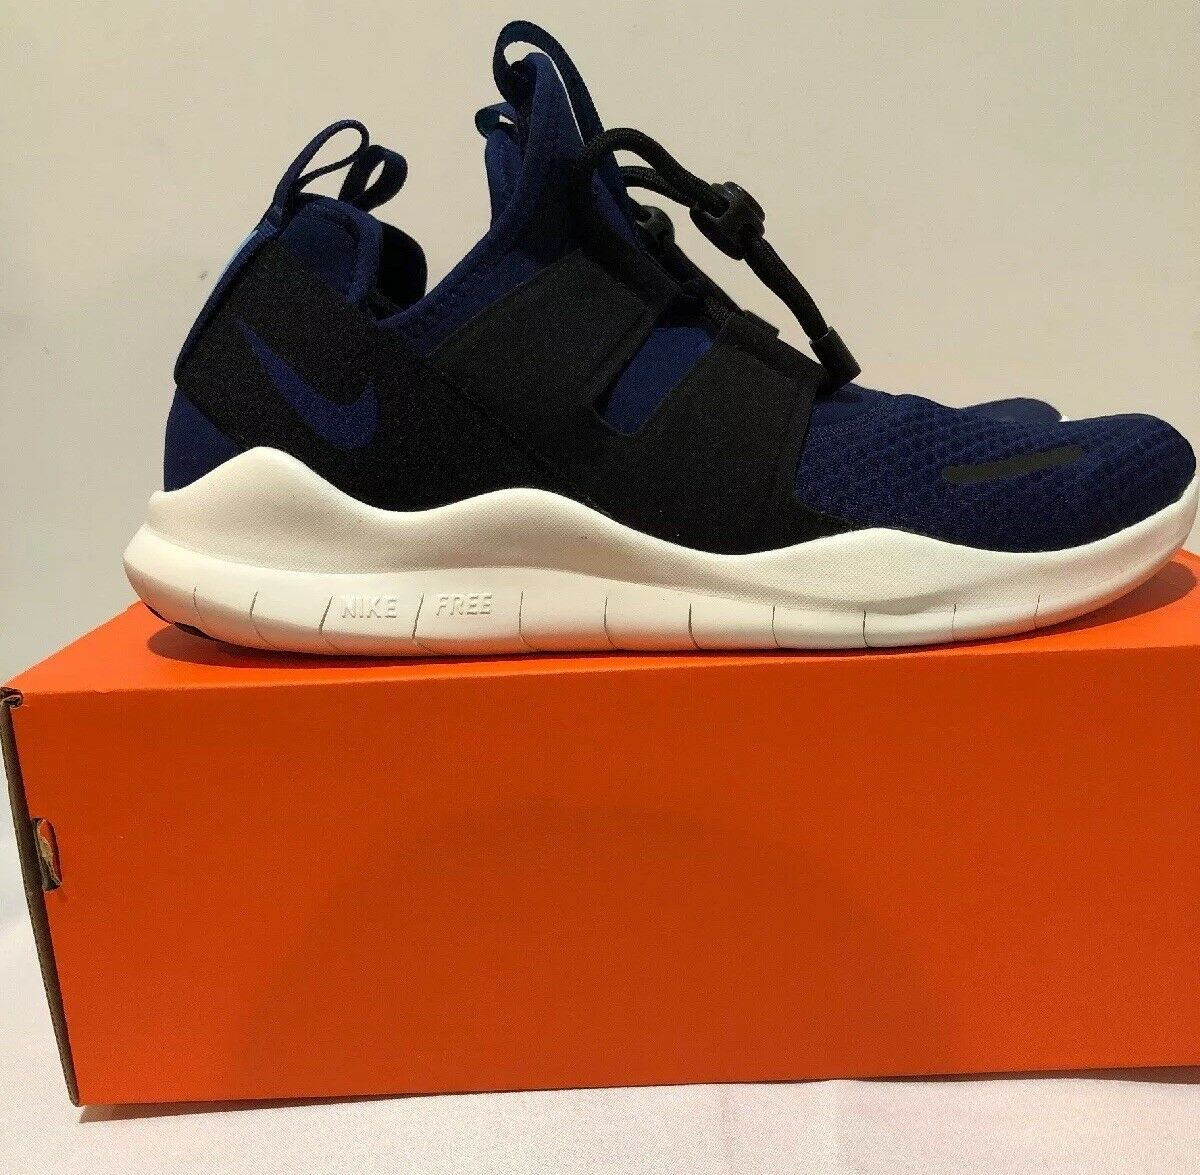 Nike Free RN CMTR 2018 bluee Navy Running Comfortable Training Size 11 Gym shoes